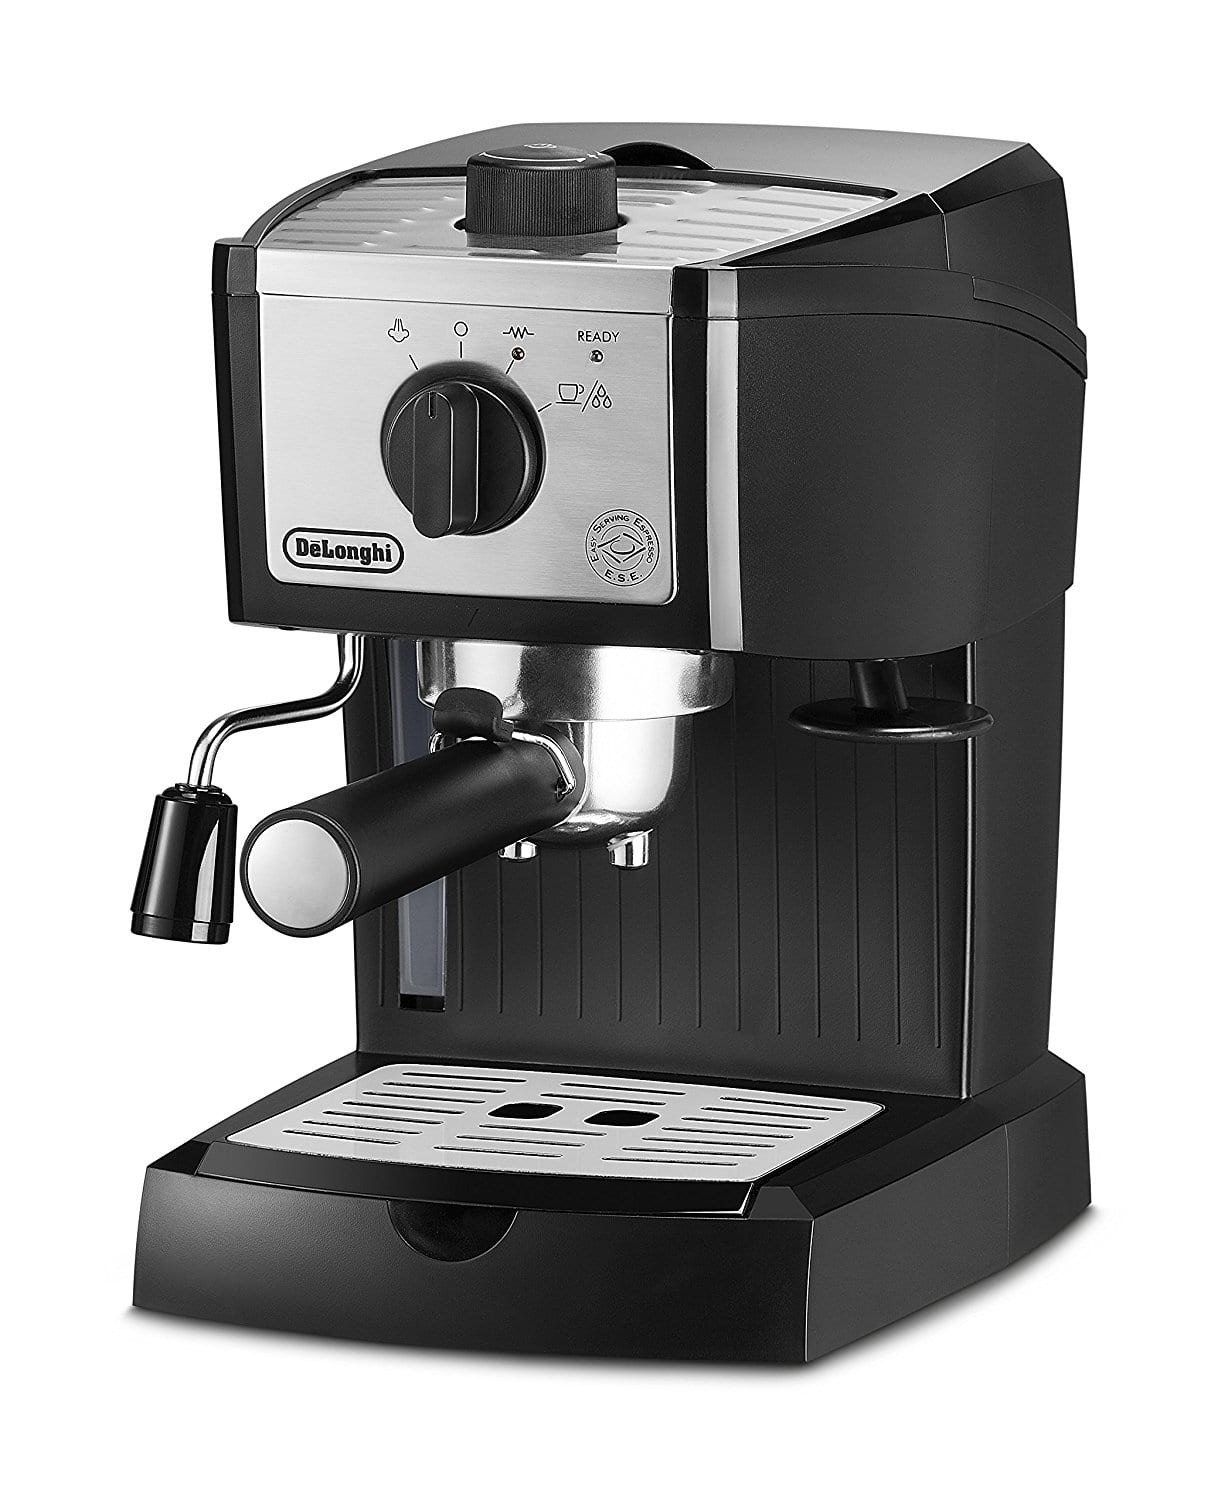 delonghi espresso maker ec155 manual